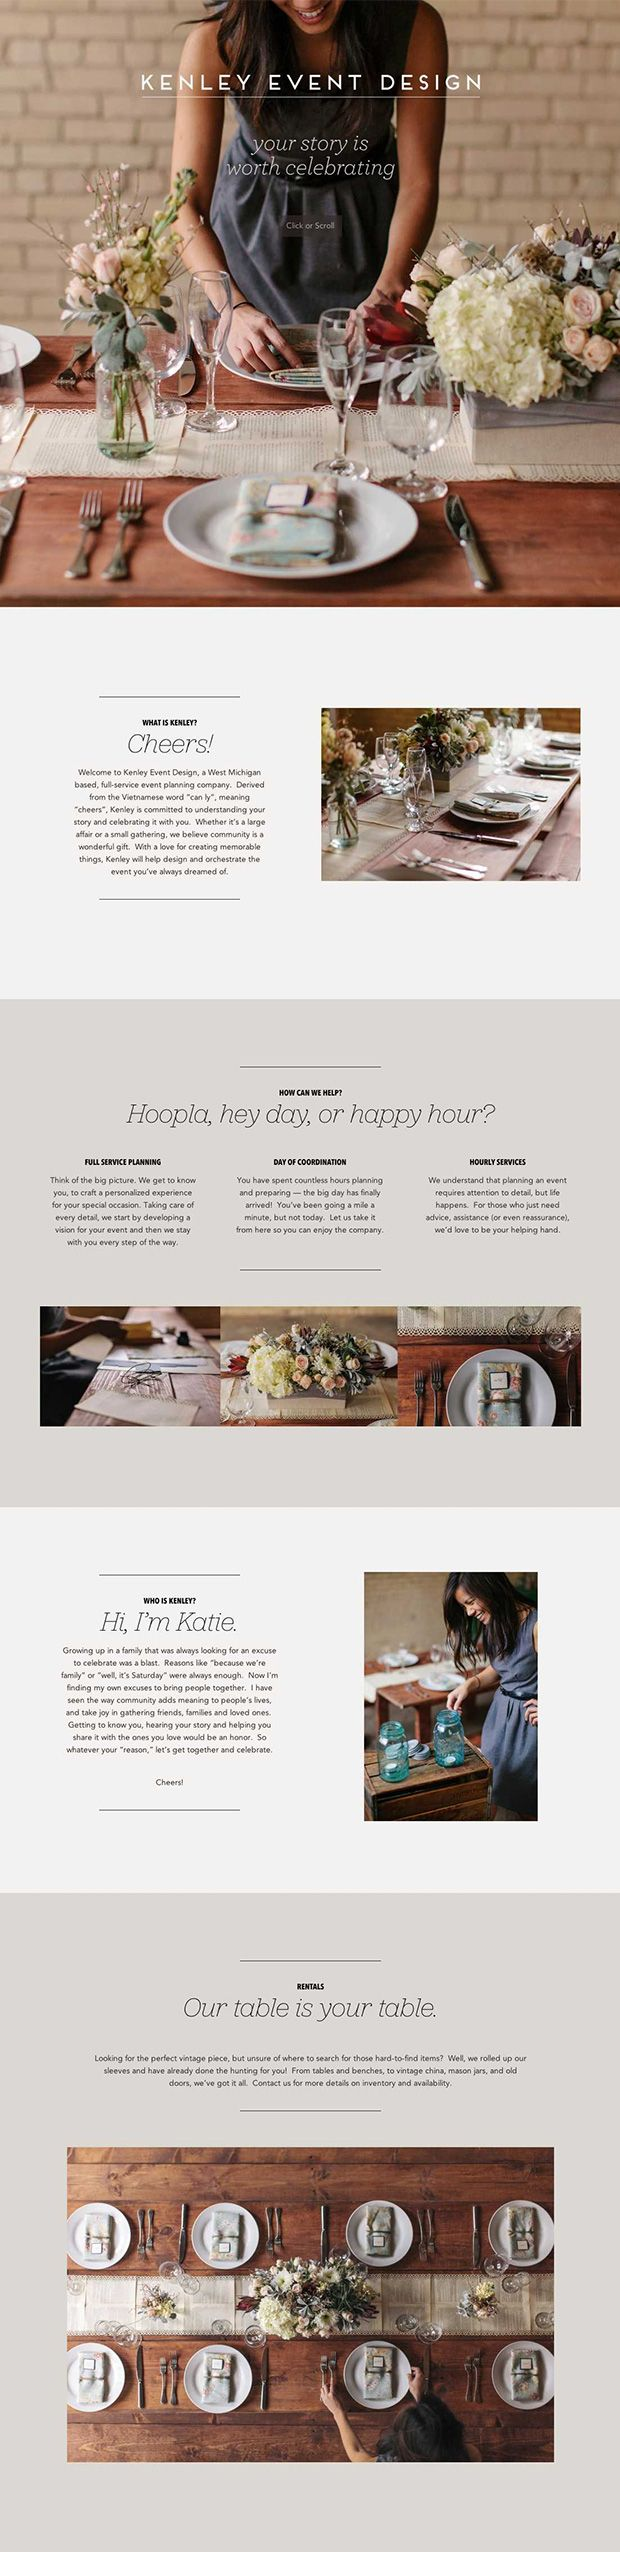 // #web #design #inspiration #layout #webdesign